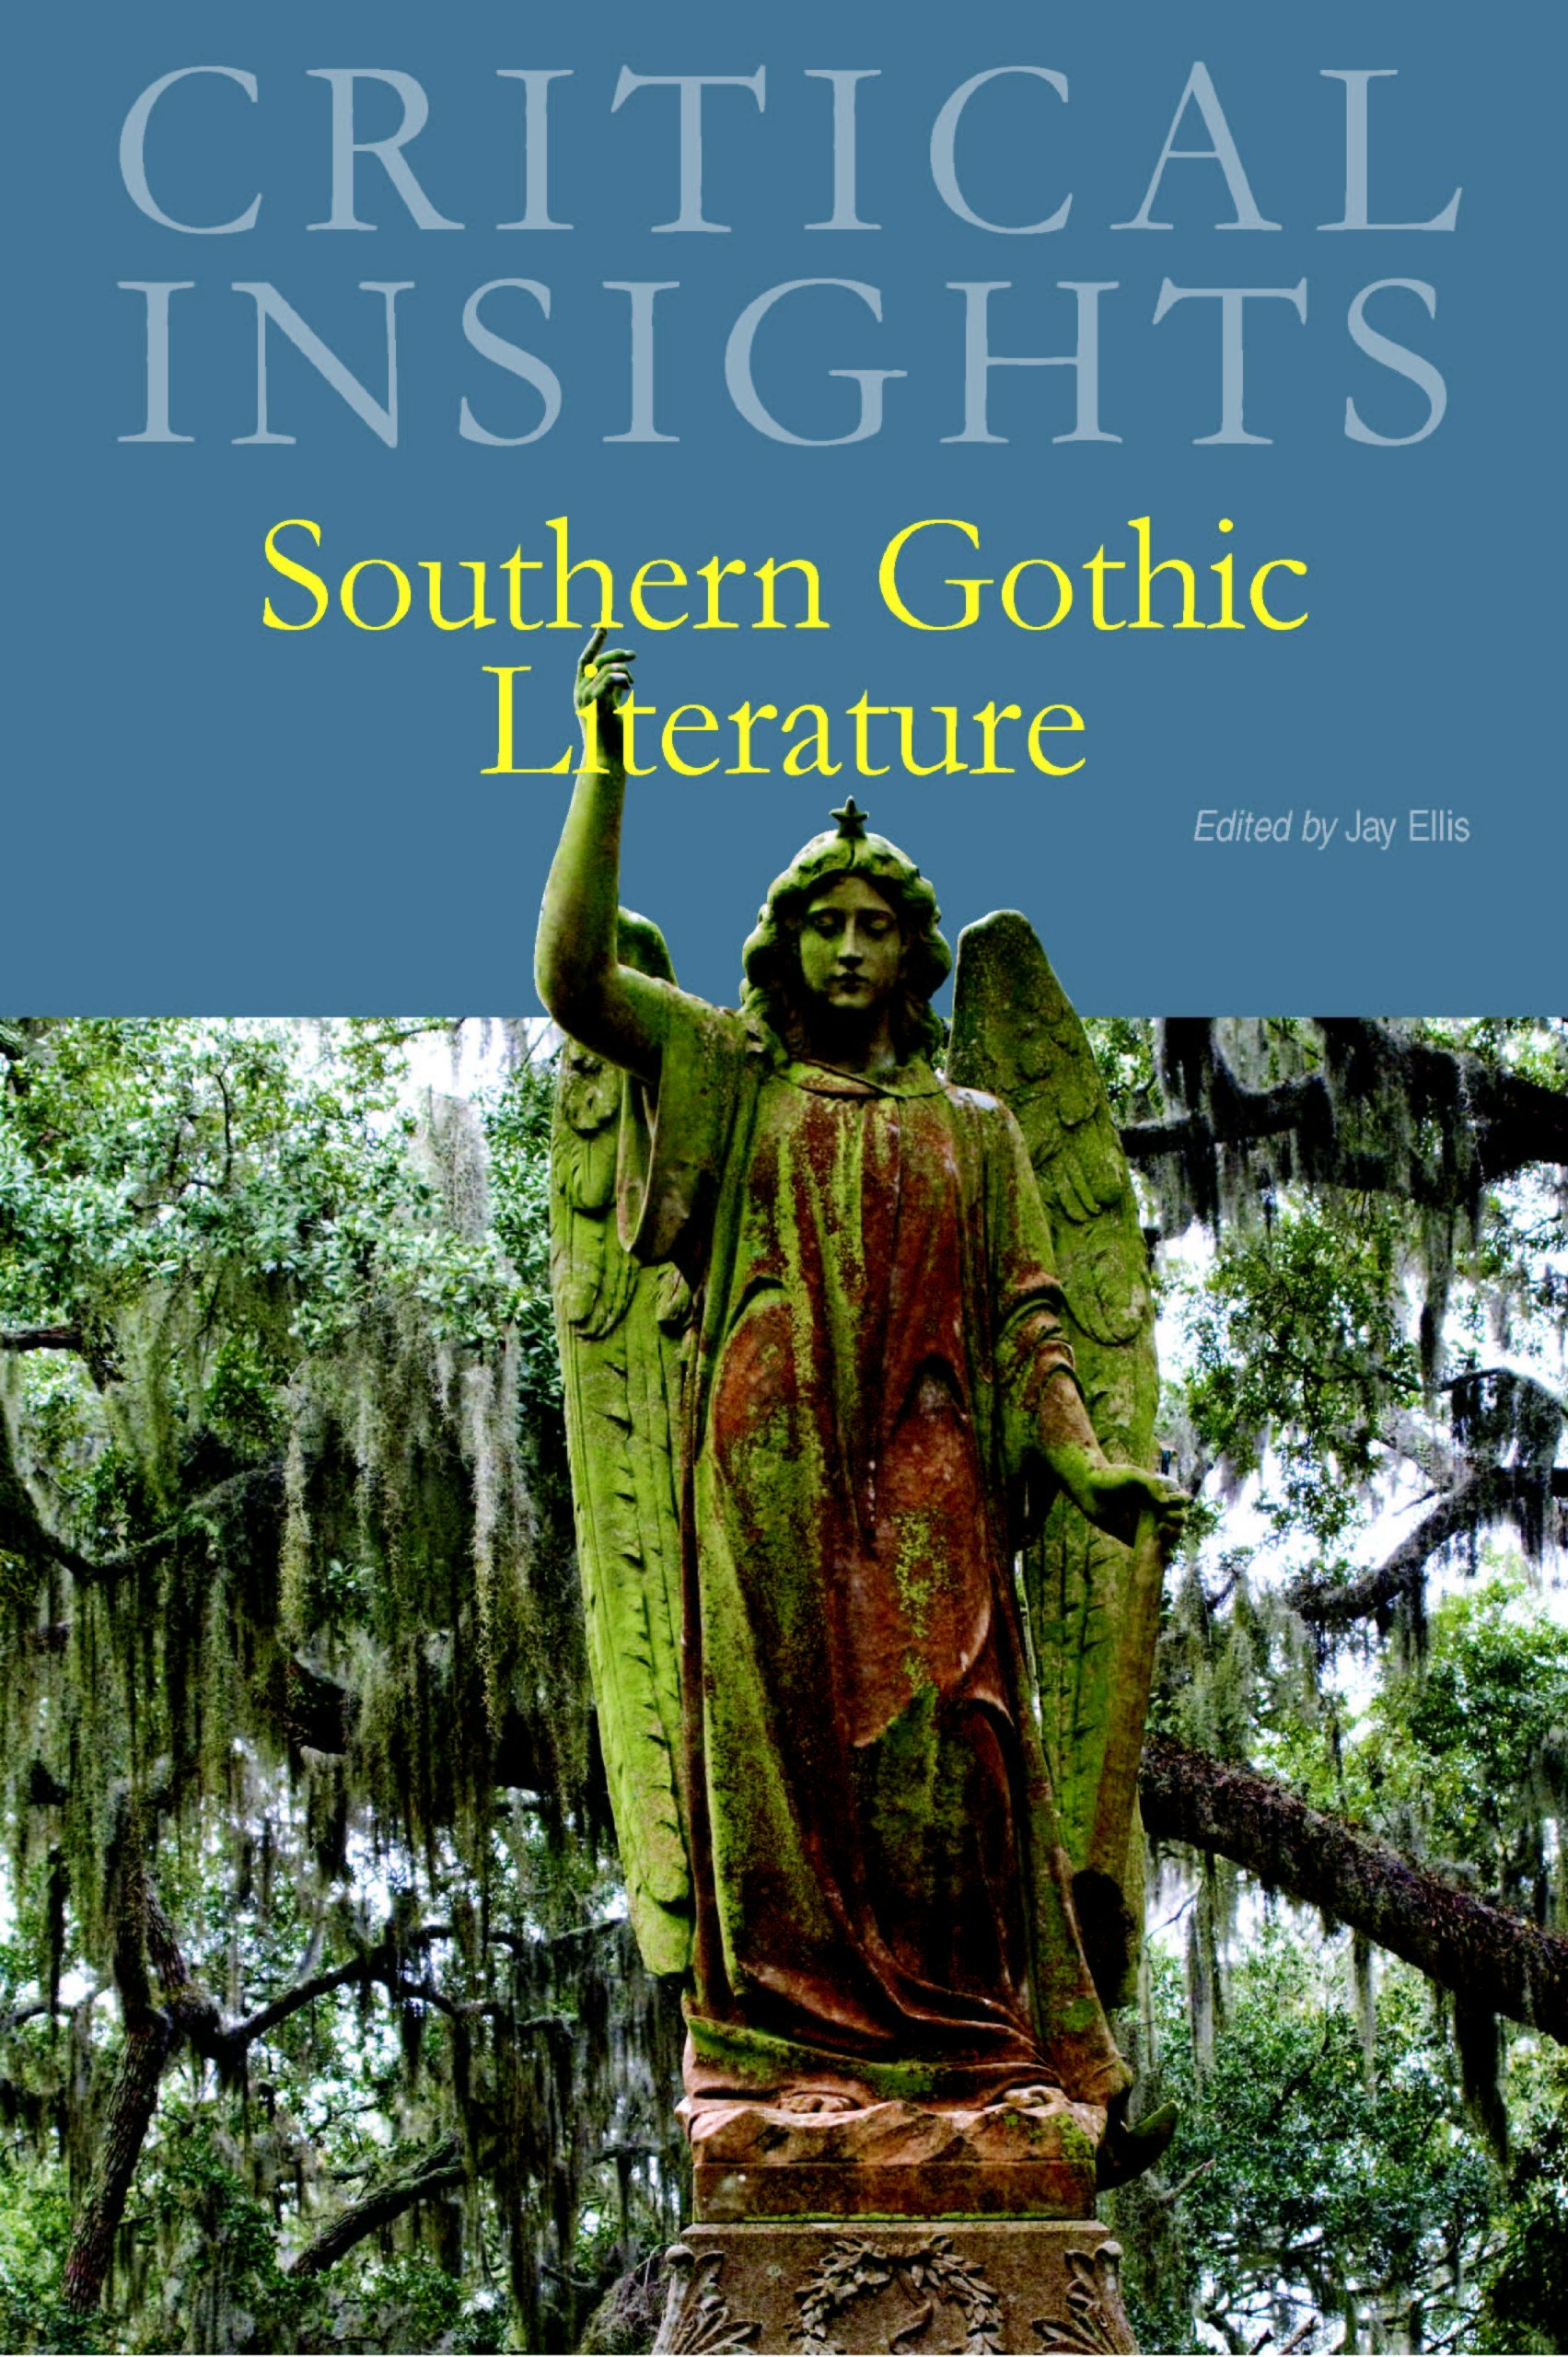 Southern Gothic Literature Critical Insights Jay Ellis 9781429838238 Amazon Books